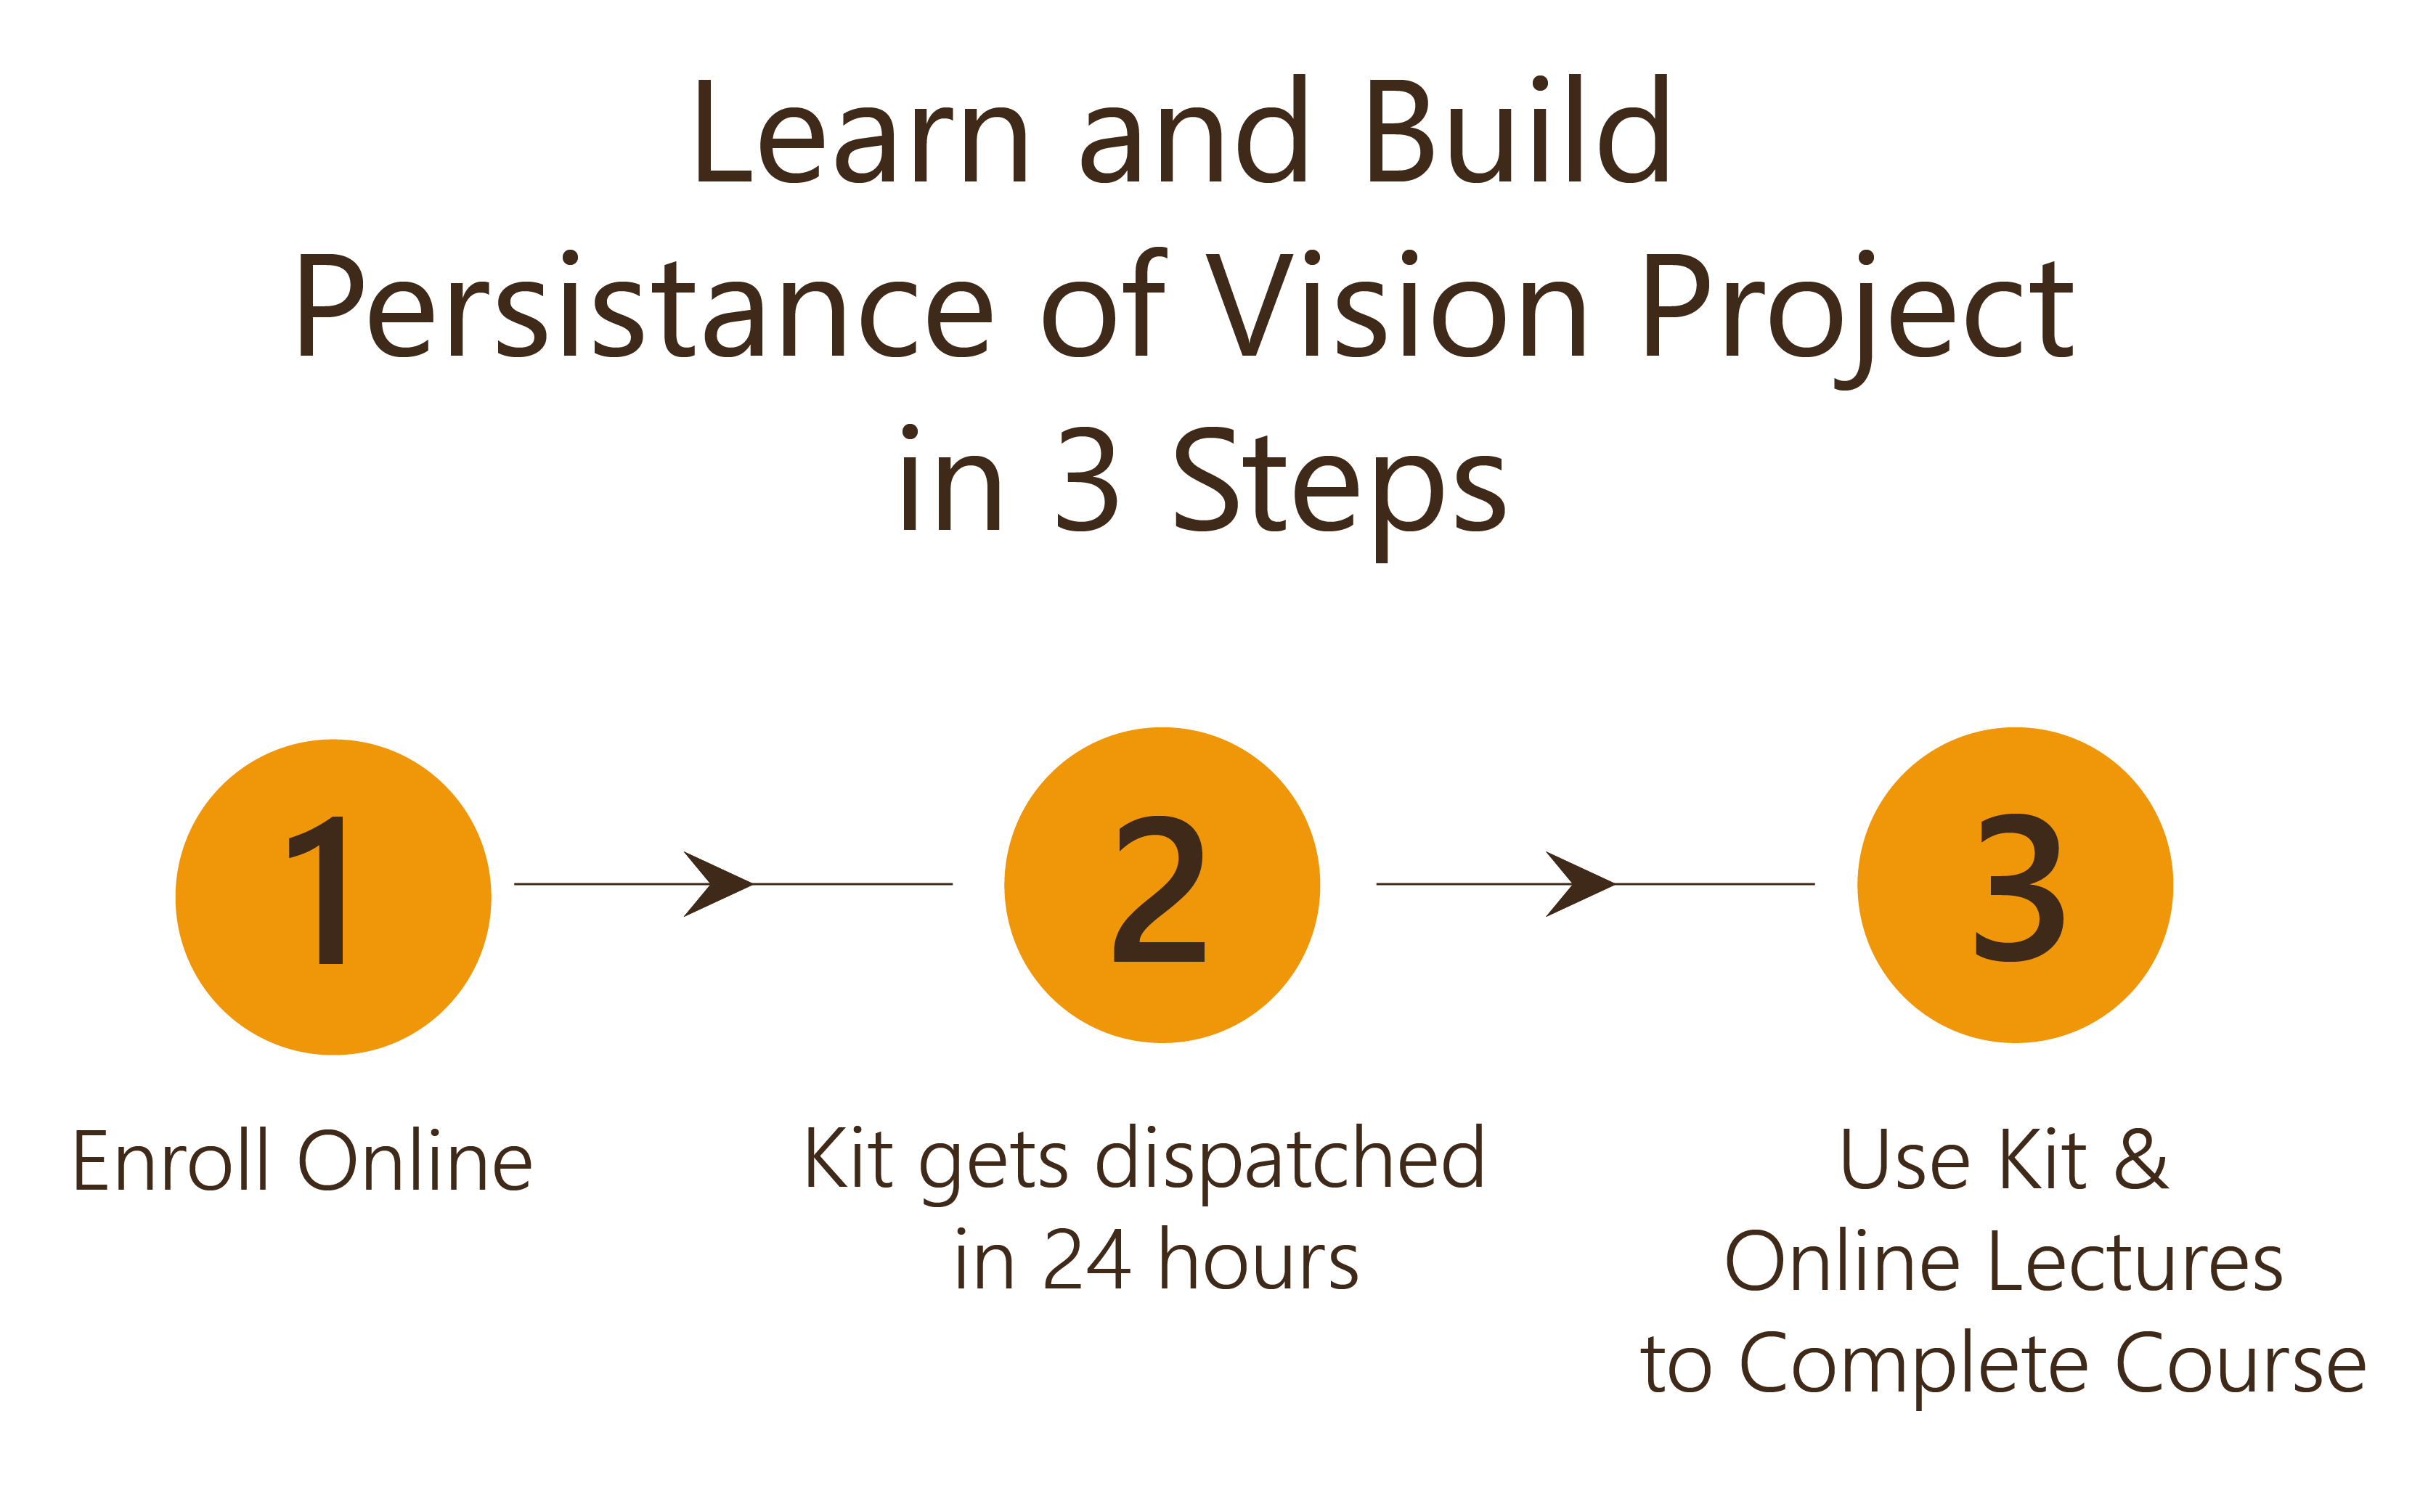 Learn and Build Persistence of Vision project in 3 Steps